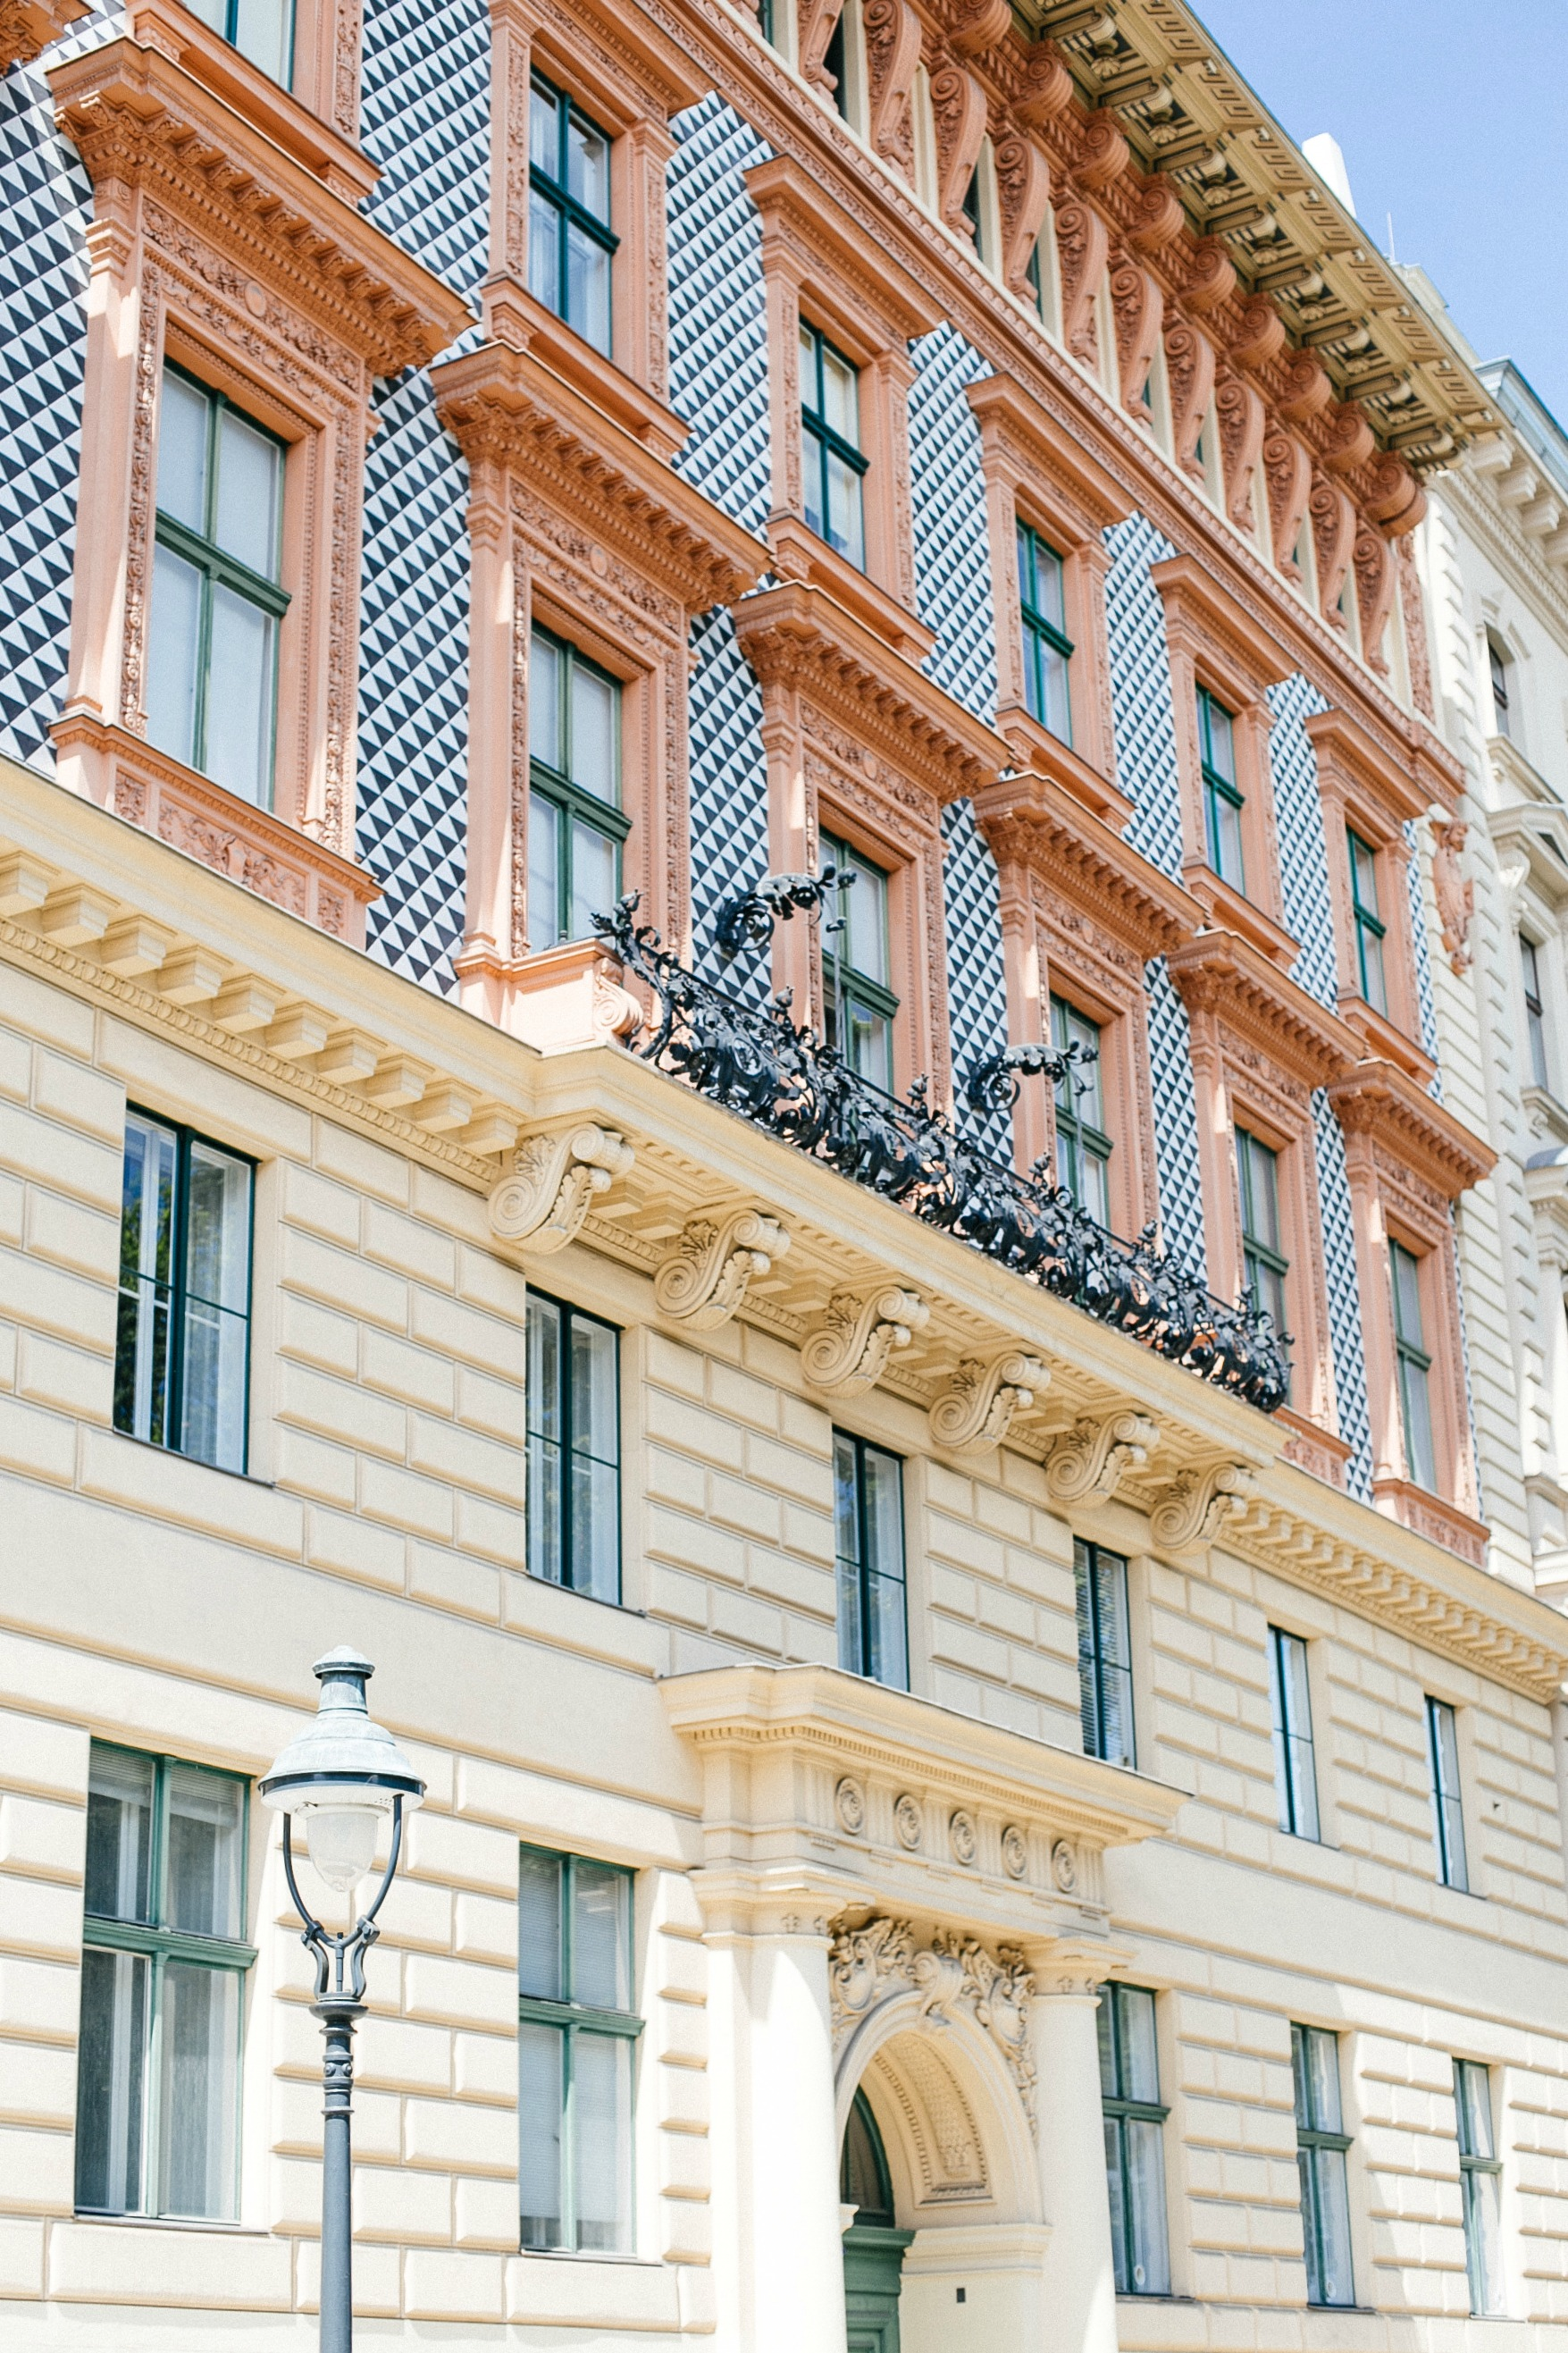 airbnb-hosting-vienna-austria-appartments-for-rent-disicouture-20